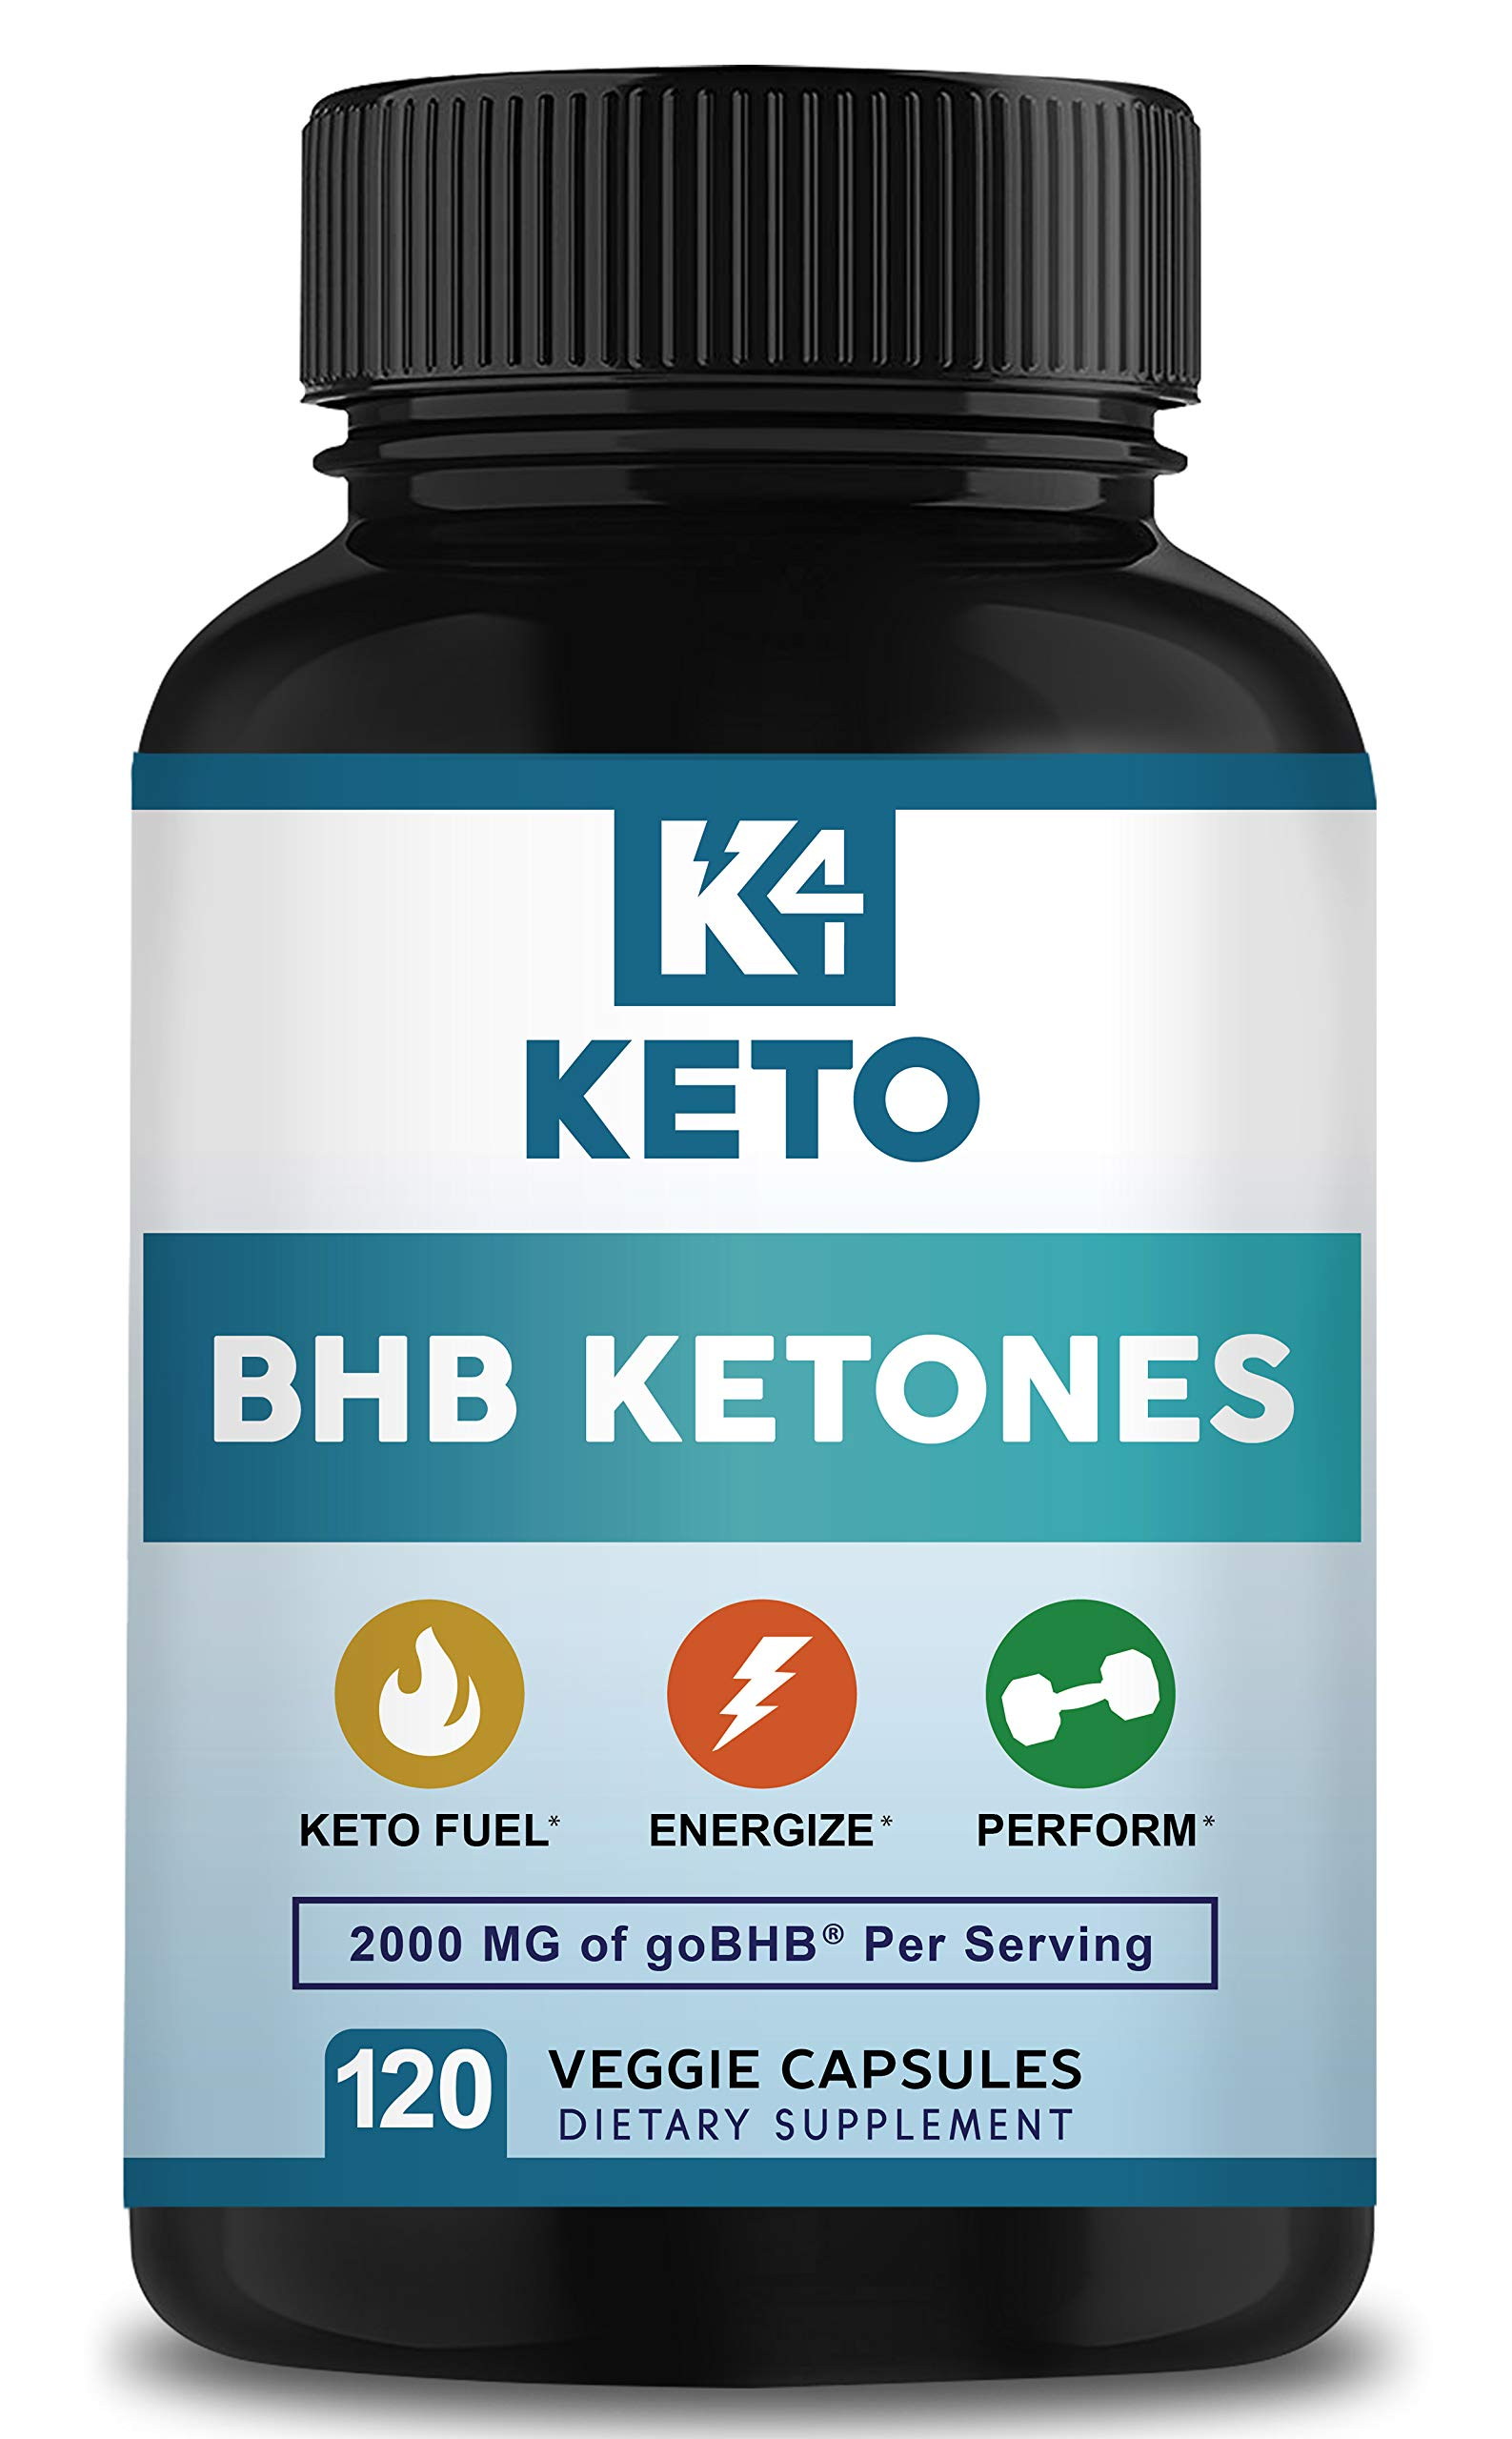 K4 Keto BHB - Exogenous Ketones BHB Salts Capsules - 2000mg of Patented goBHB Beta-Hydroxybutyrate - Ketone Supplement Pills to Support Ketogenic Diet & Ketosis by K4 Keto